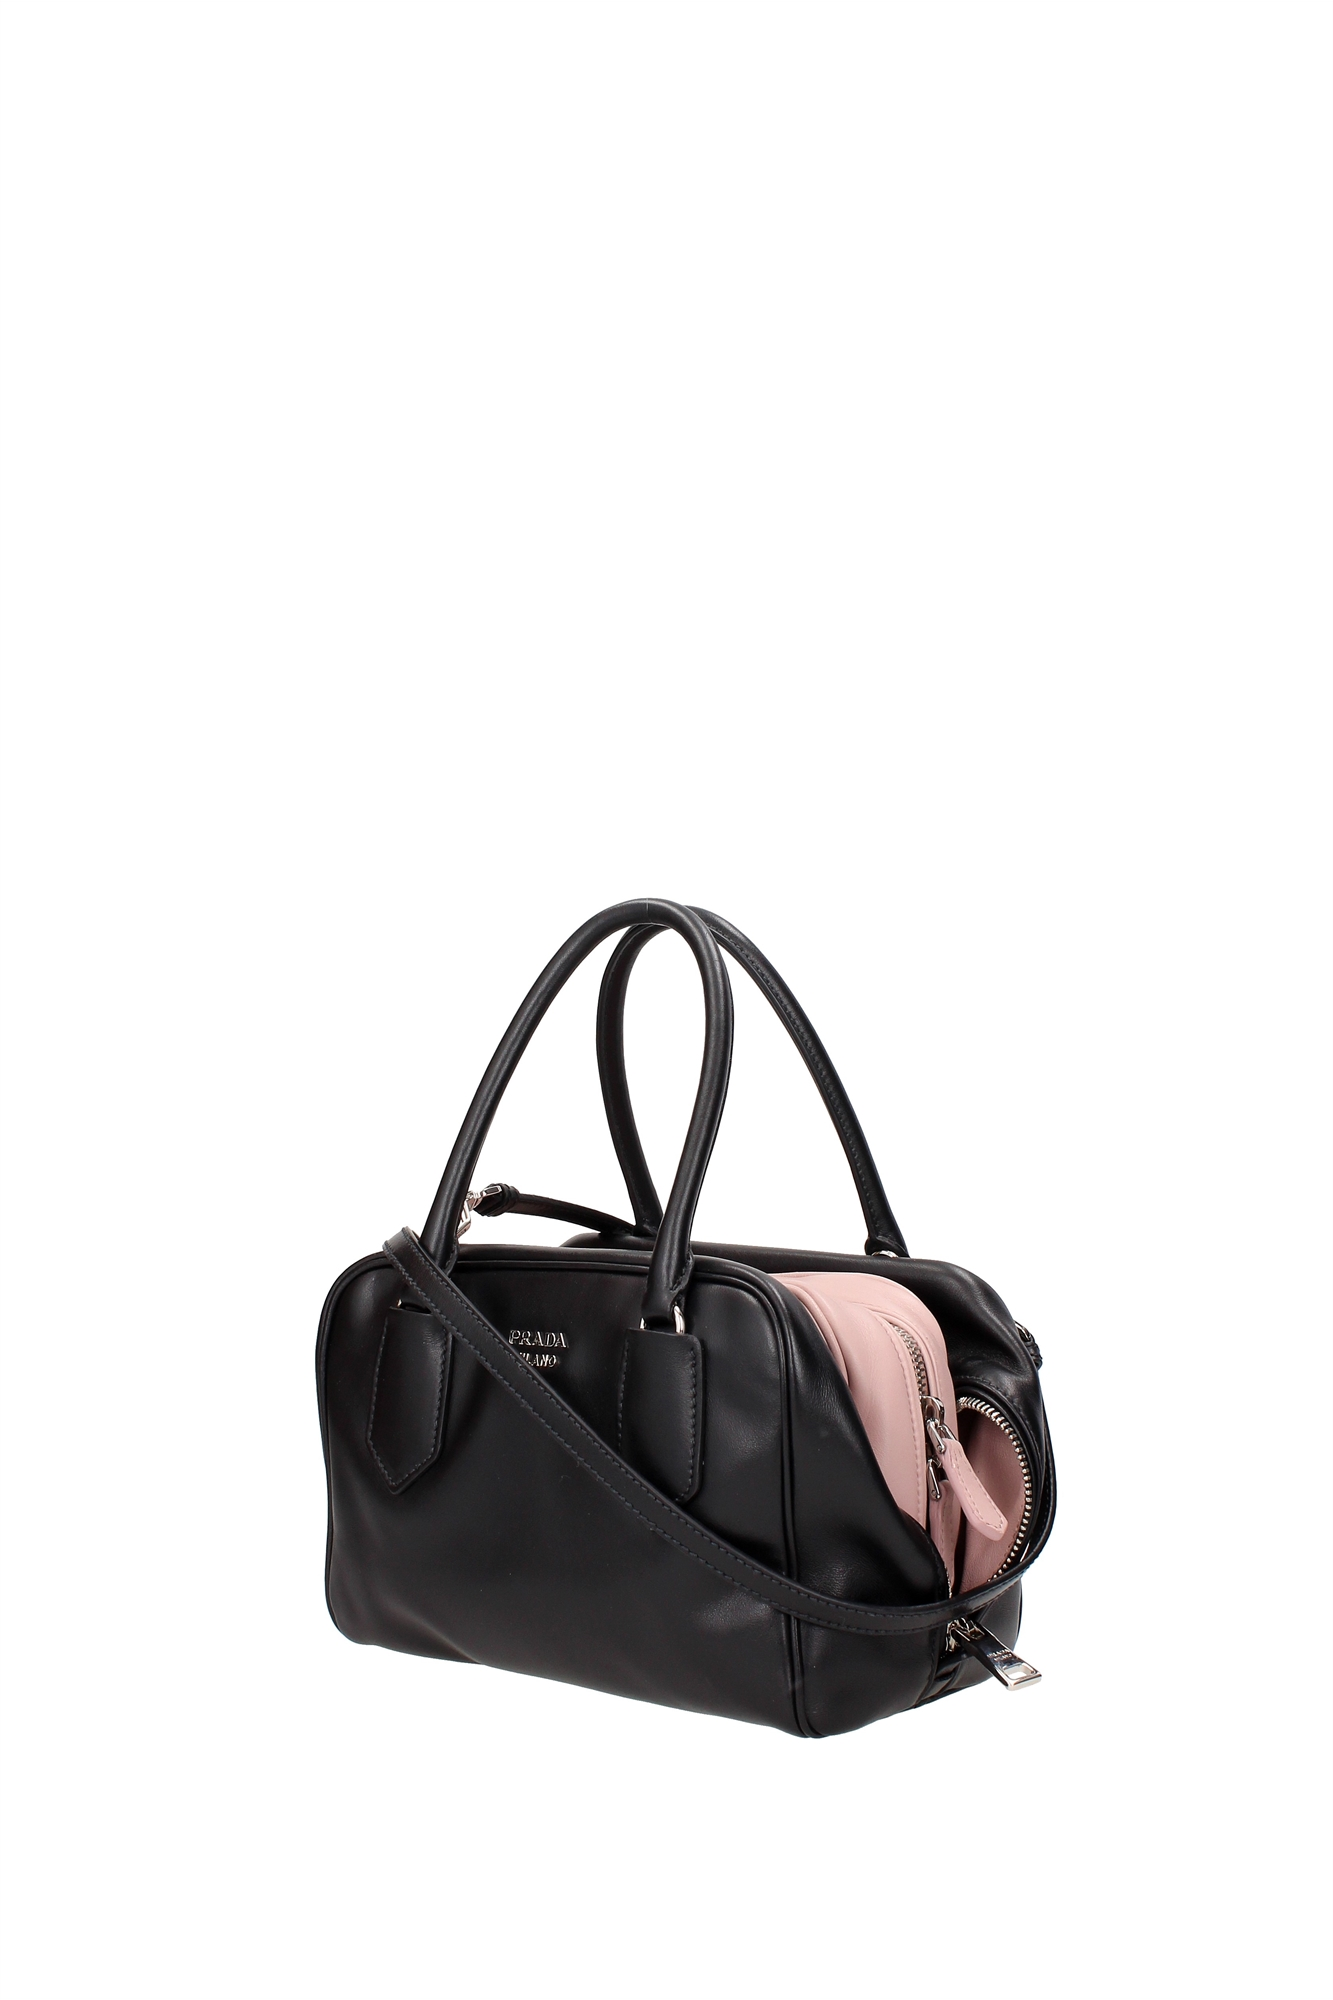 Cool Prada Handbags For Women On Sale Black And White Prada Handbags